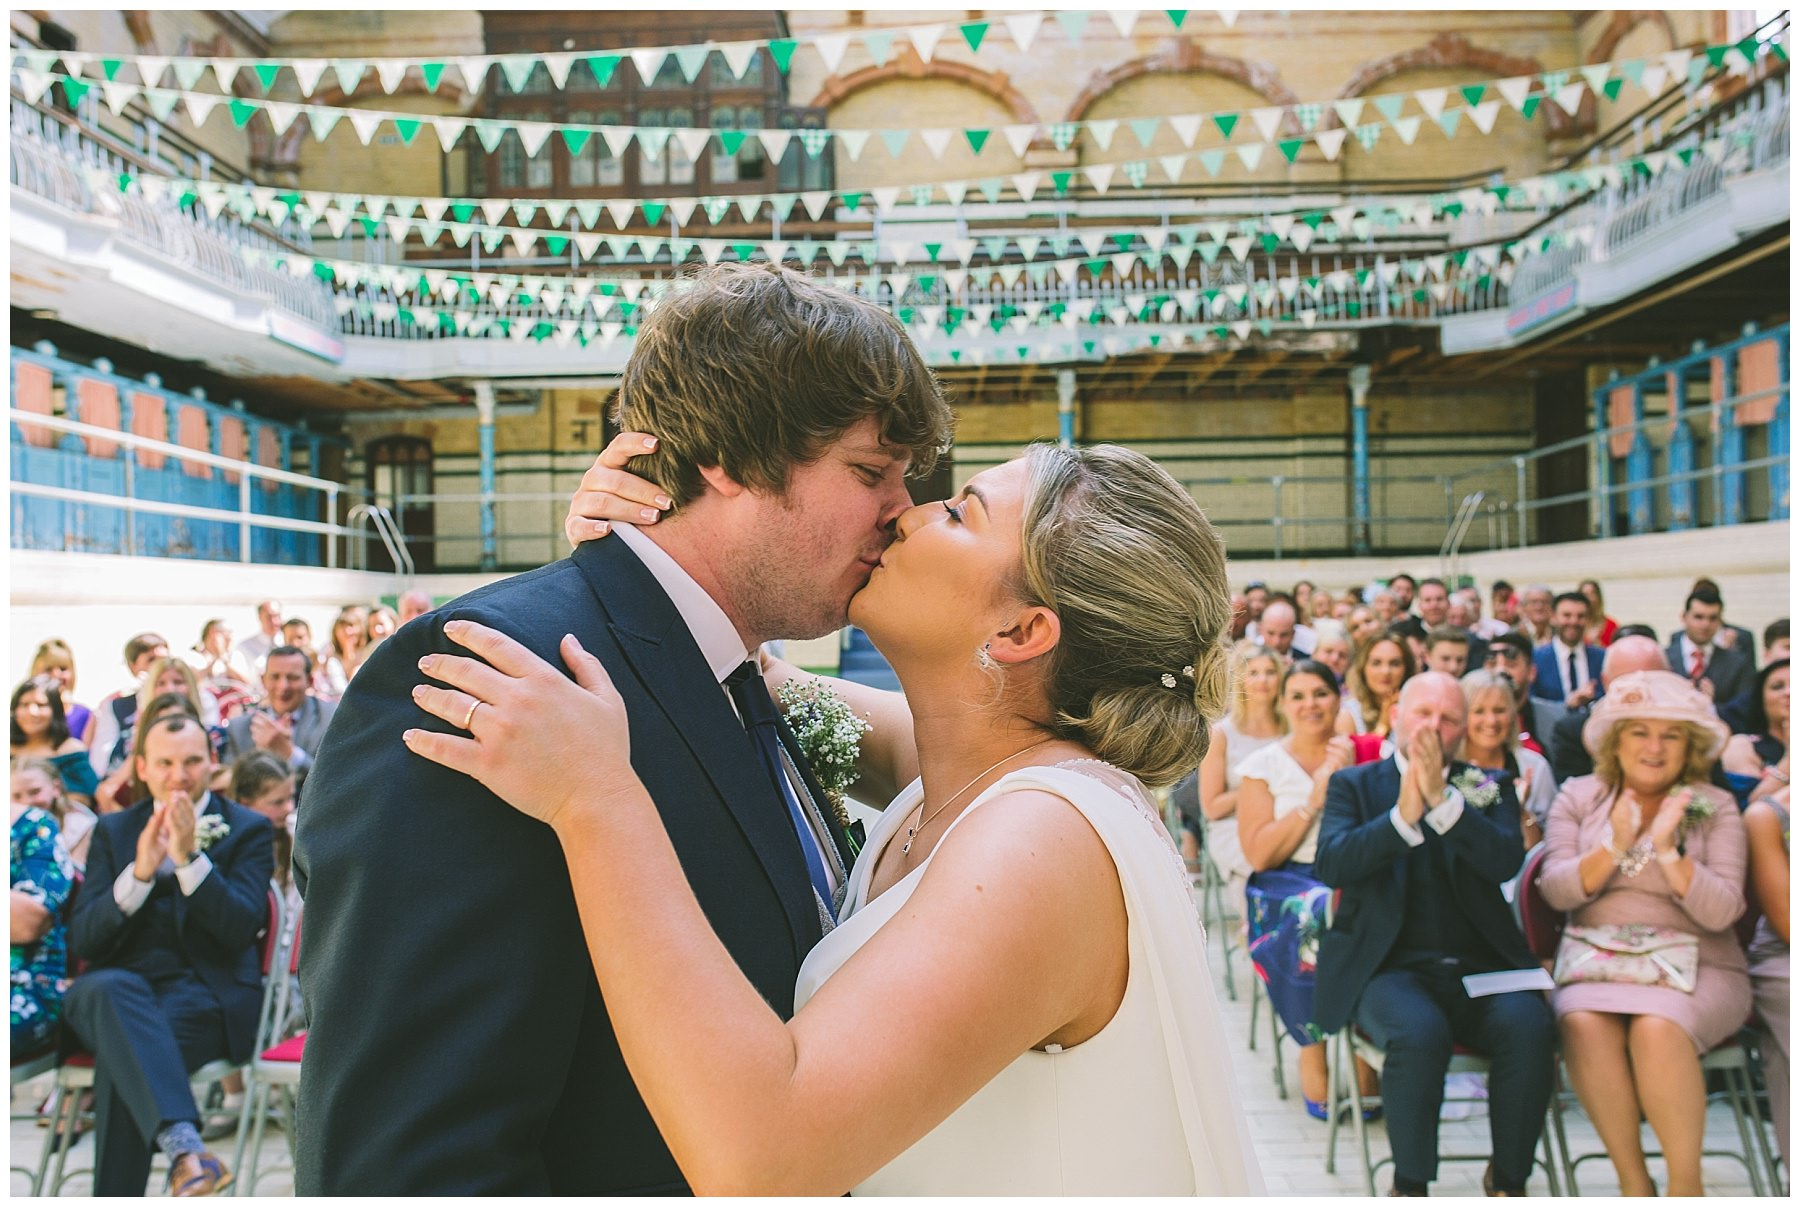 First kiss under the bunting in the pool at Victoria Baths